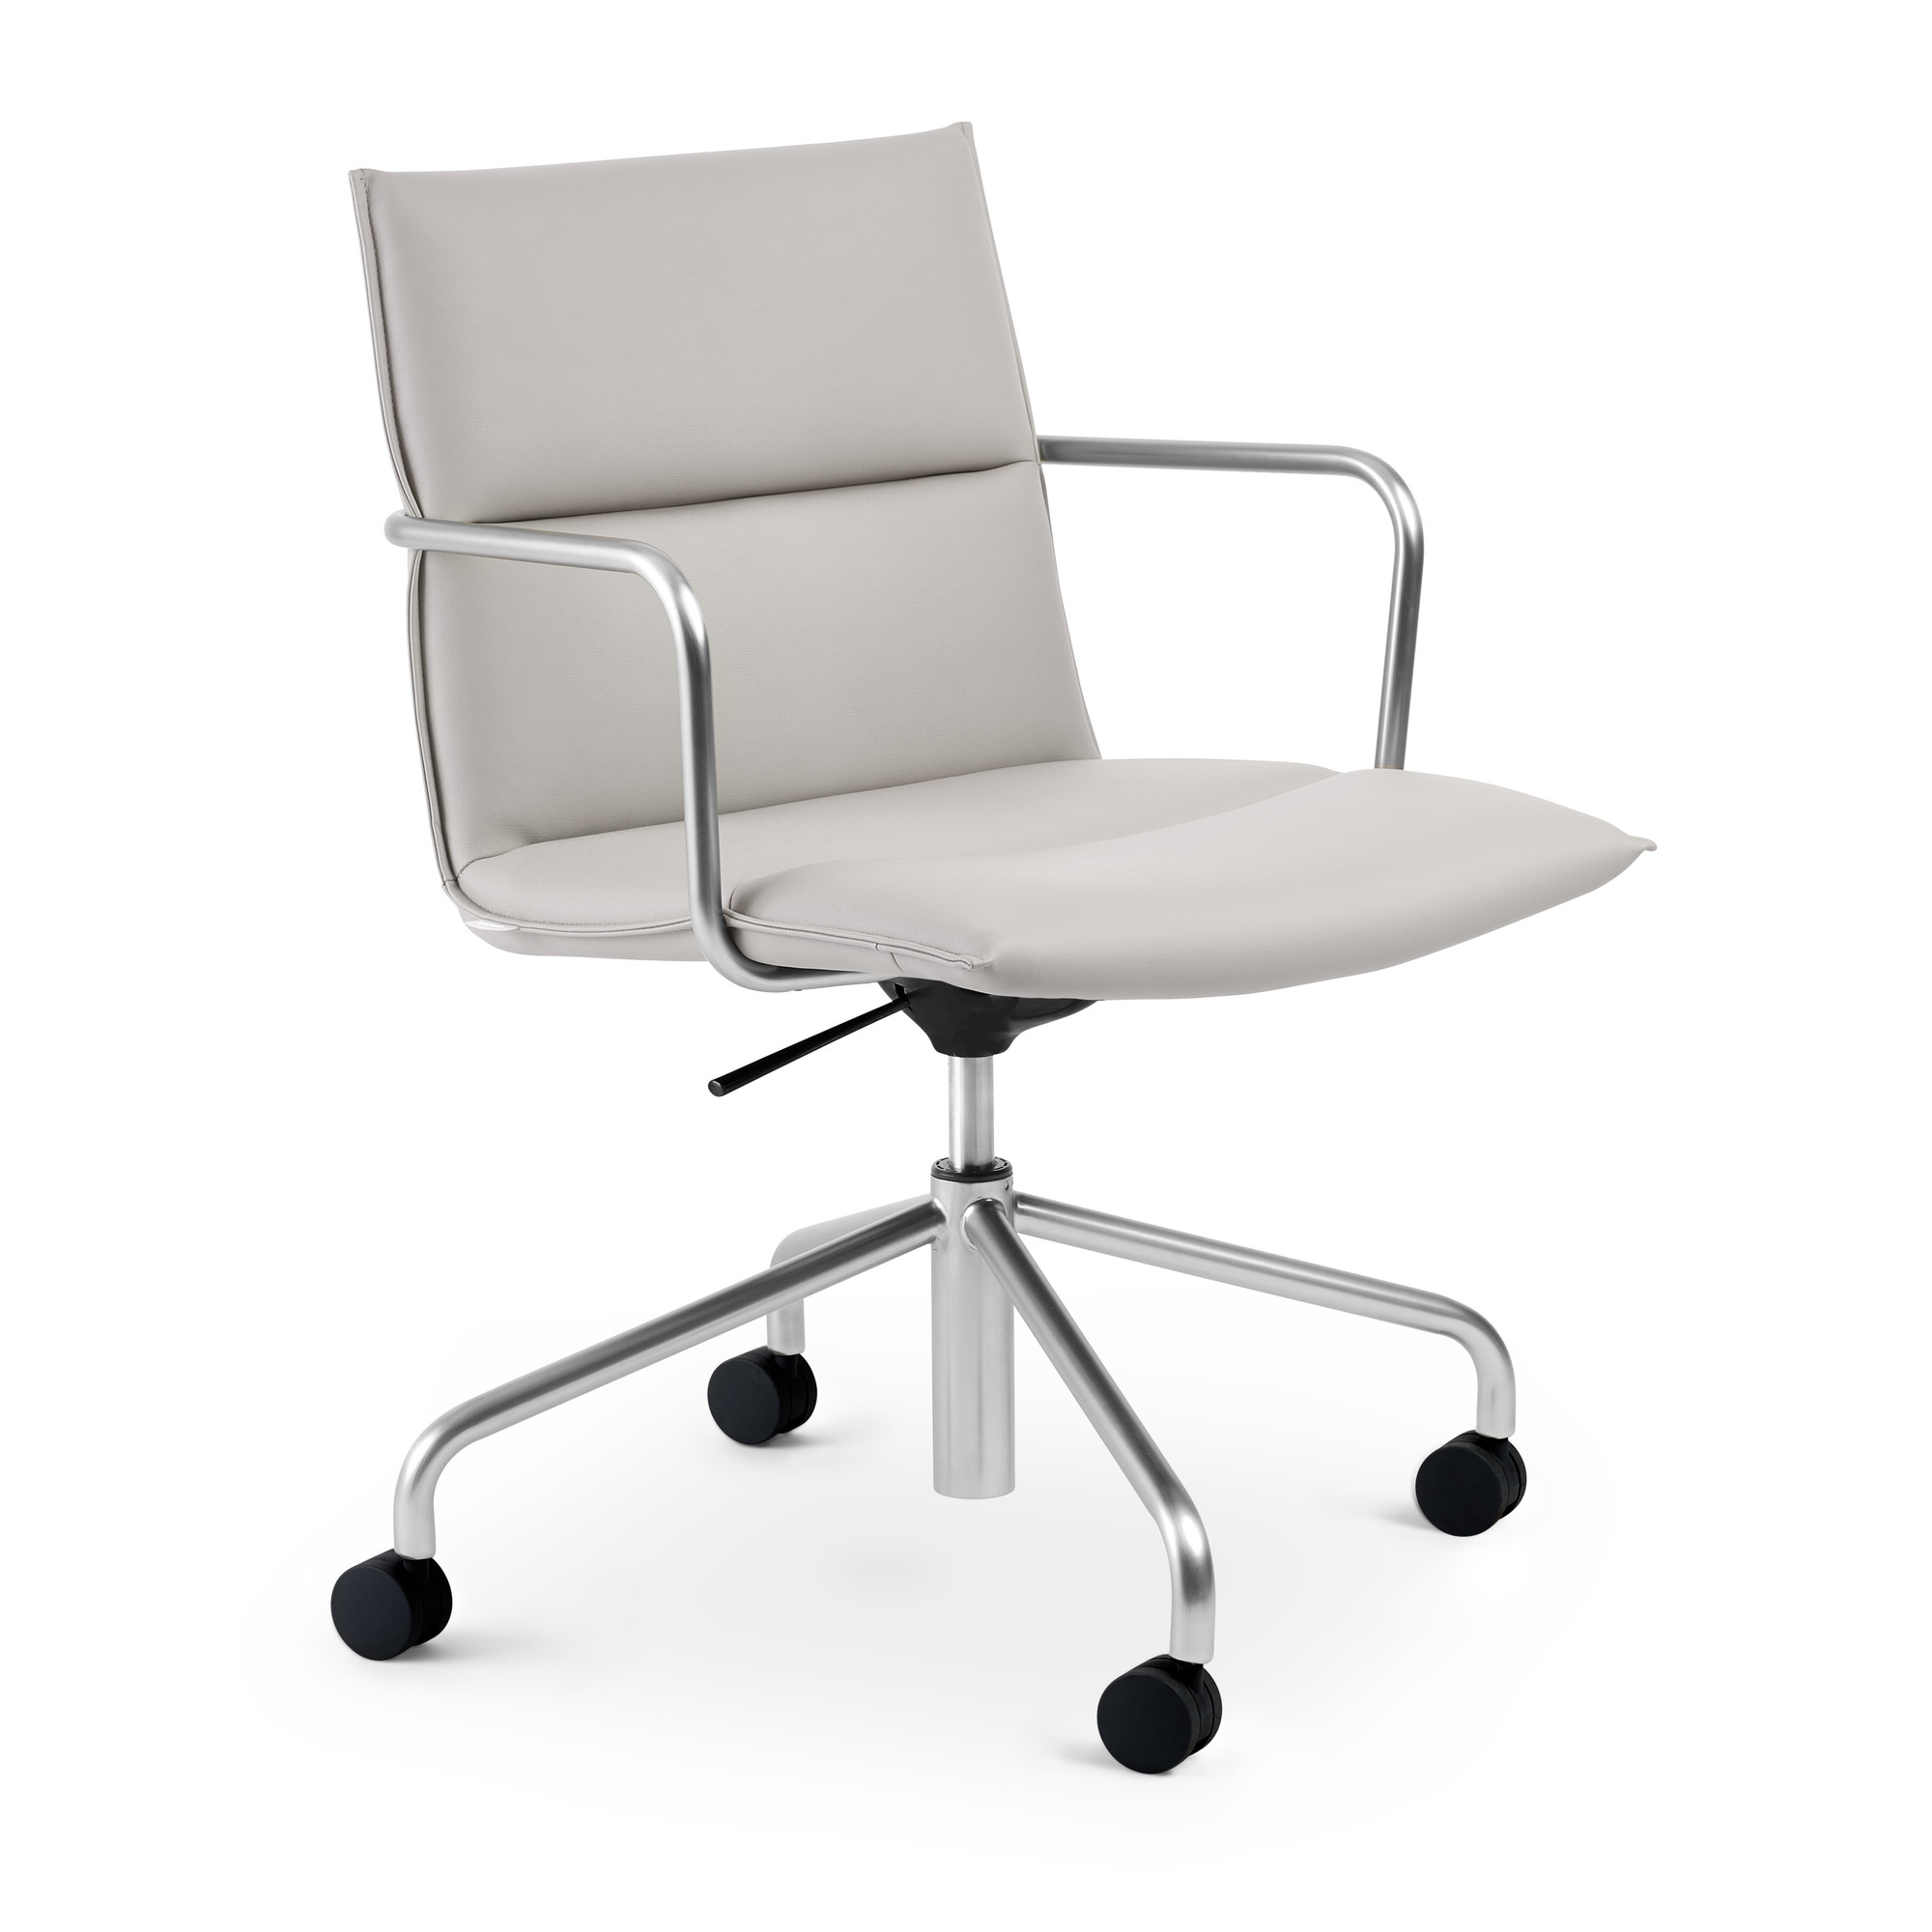 2191723a527 Light Gray Meredith Meeting Chair